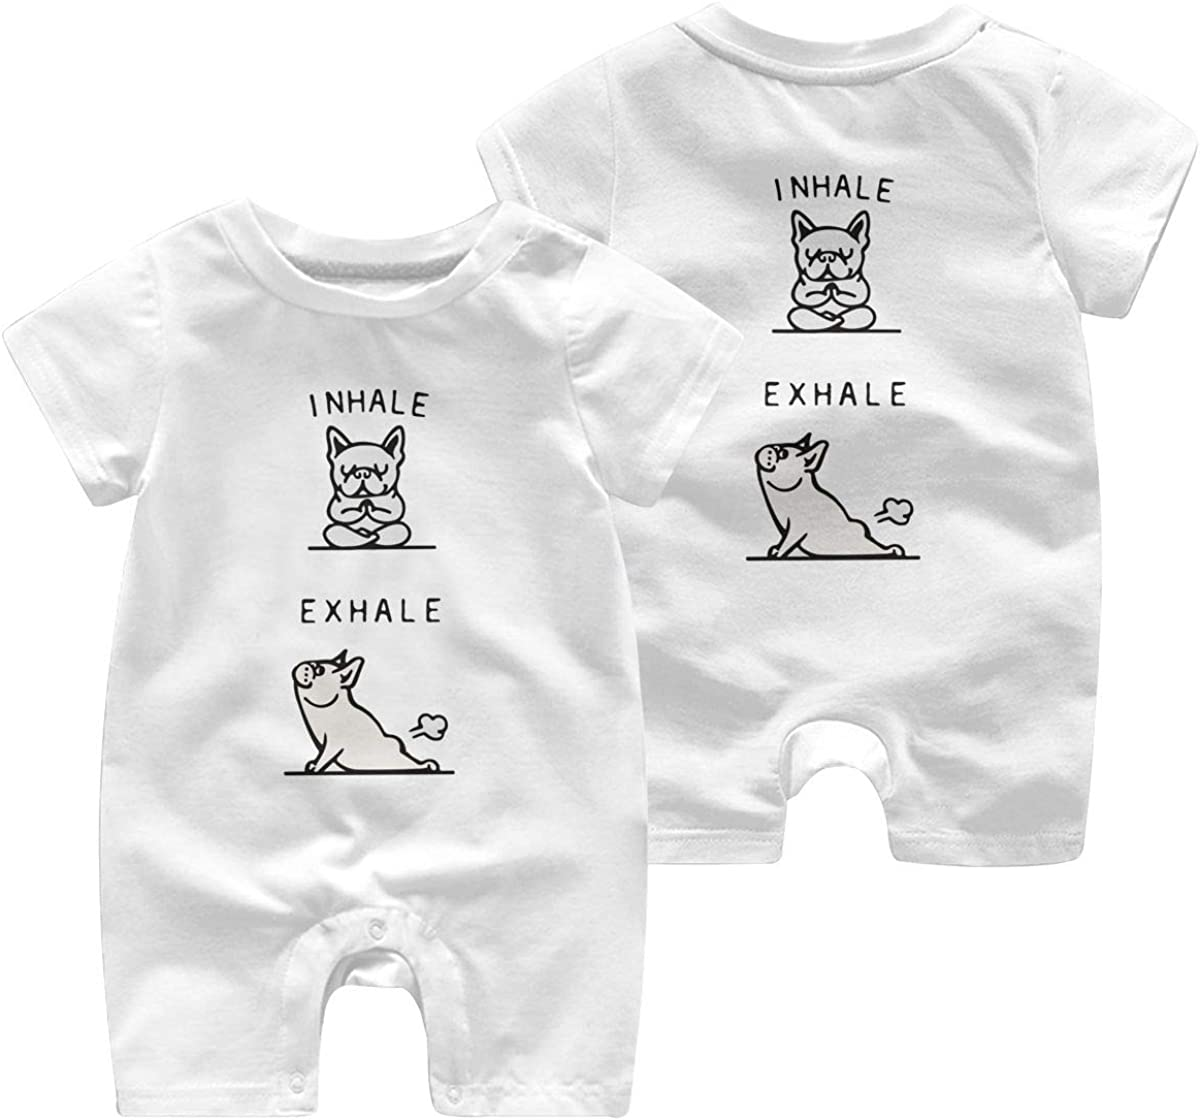 Mri-le1 Baby Girl Coverall Inhale Exhale French Bulldog Baby Clothes